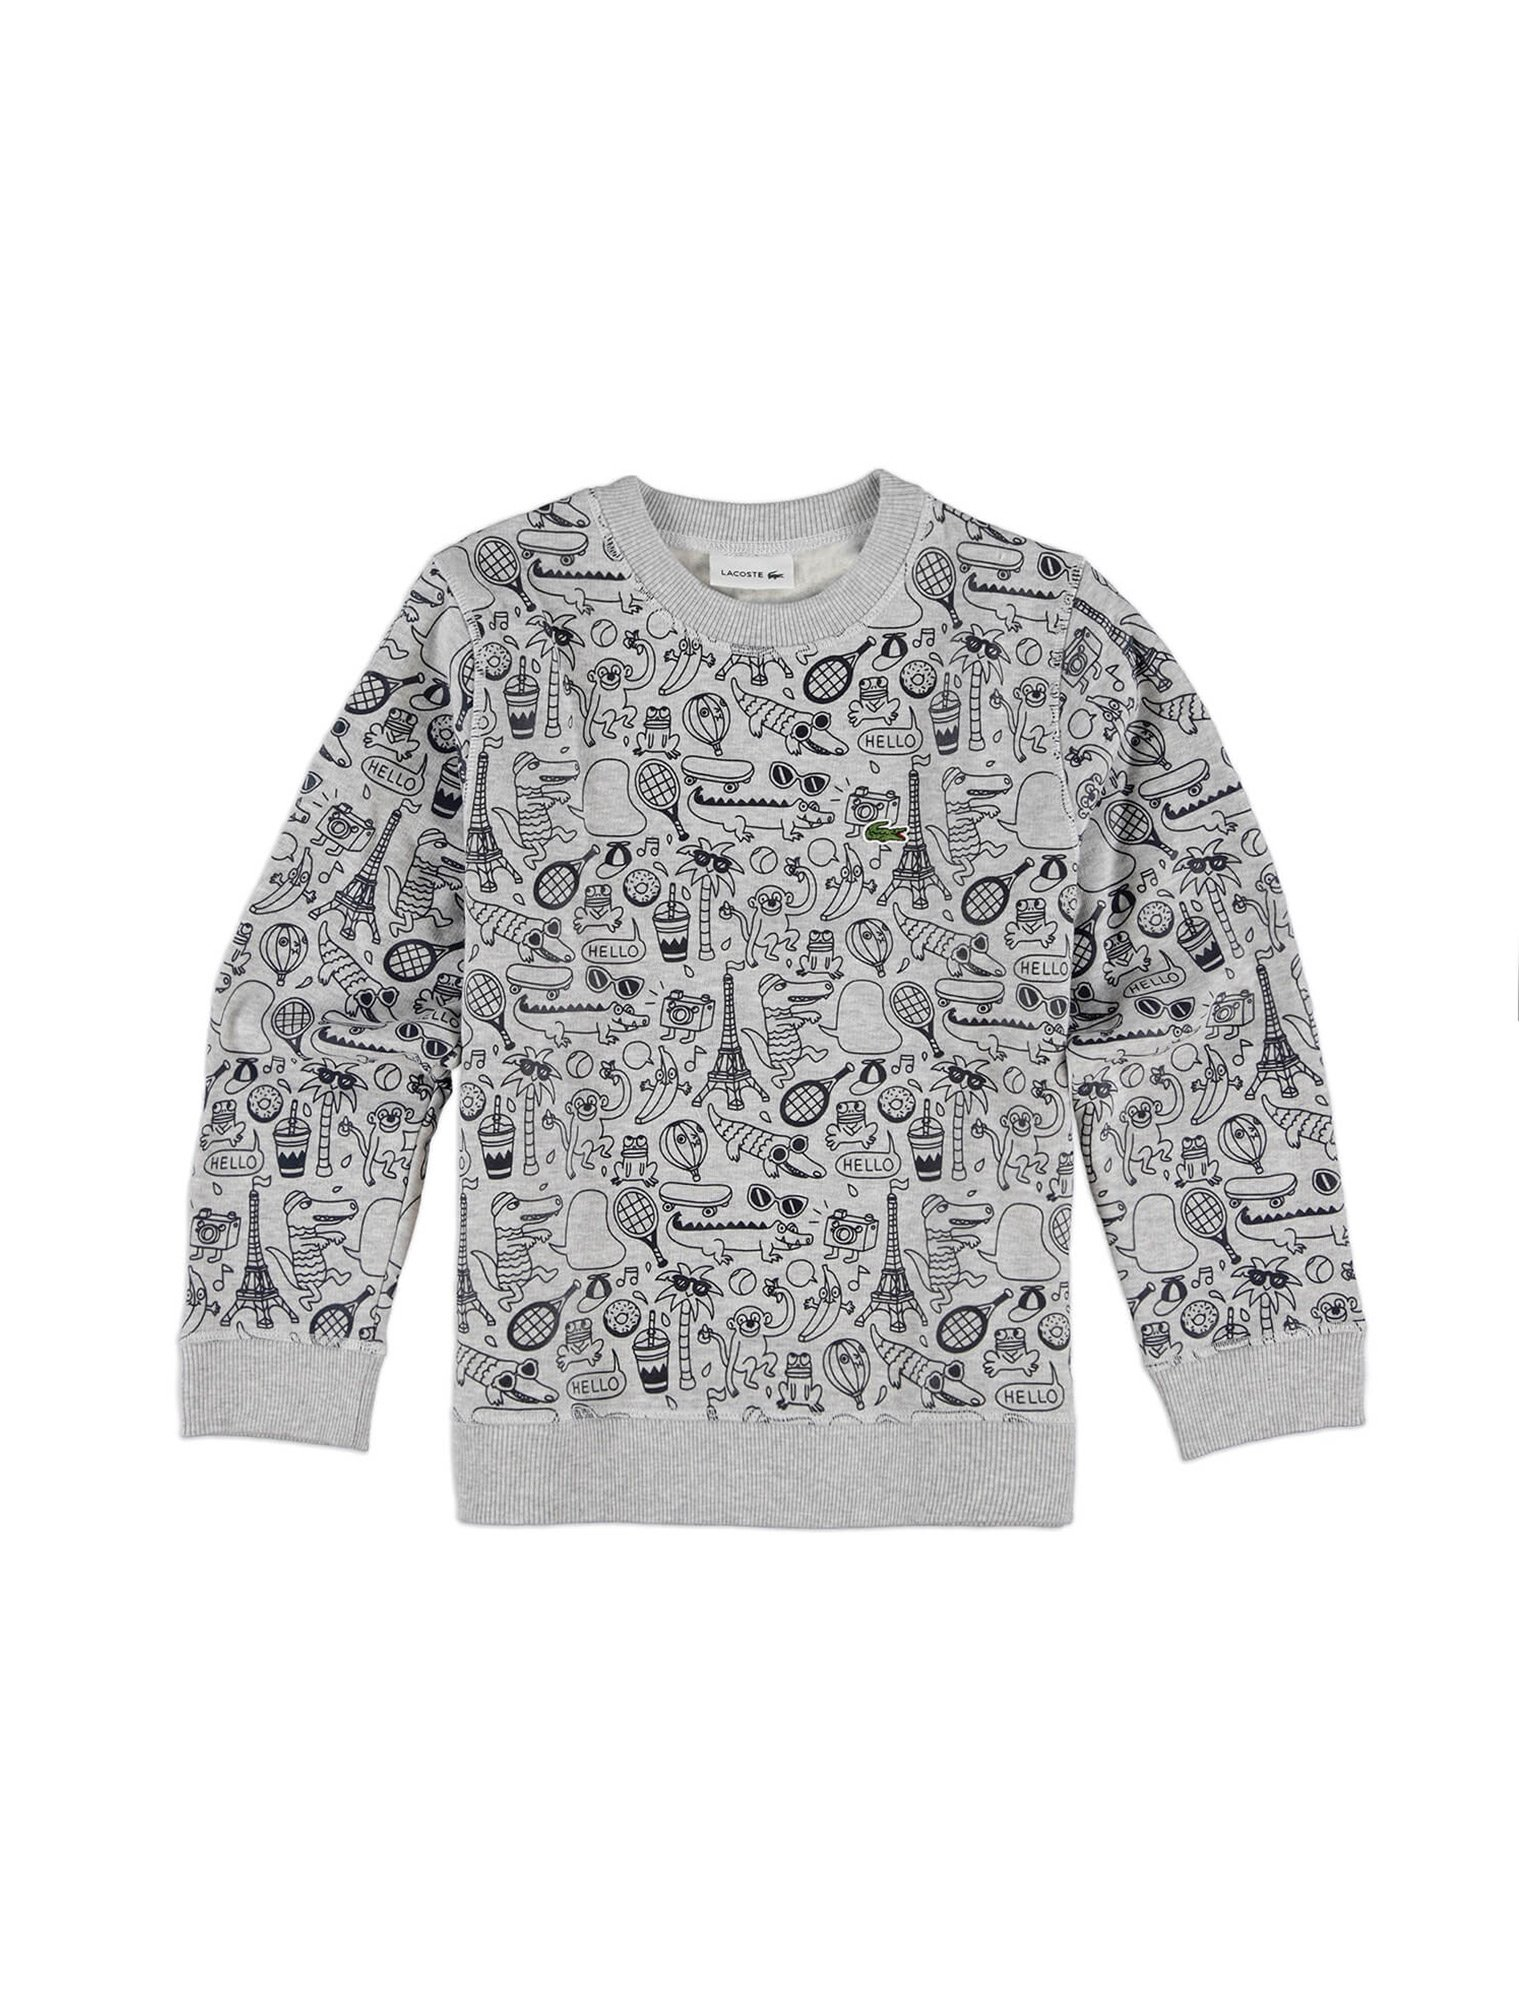 Lacoste Boy's Sweatshirt With Graffiti Print in Size 14 Years (164 cm) Off-White by Lacoste